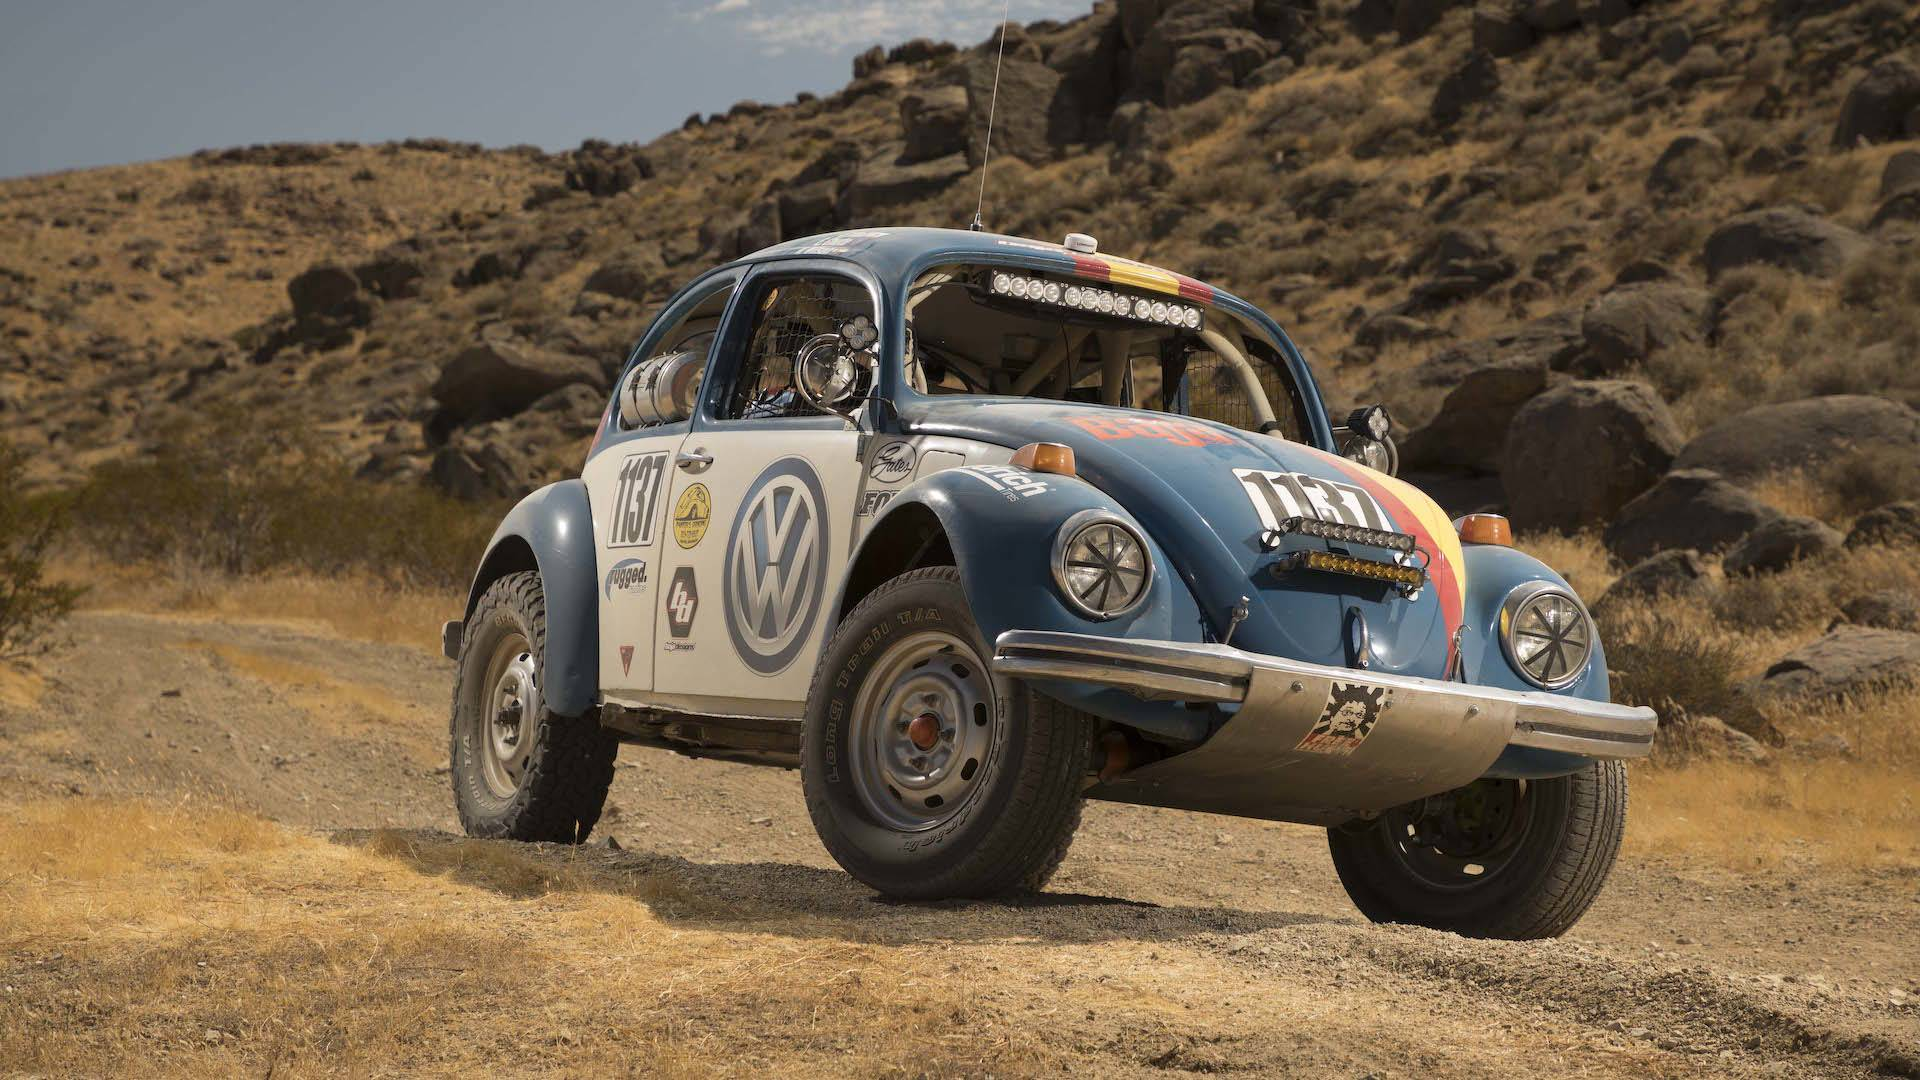 Vw Sponsoring Old School Beetle At This Years Baja 1000